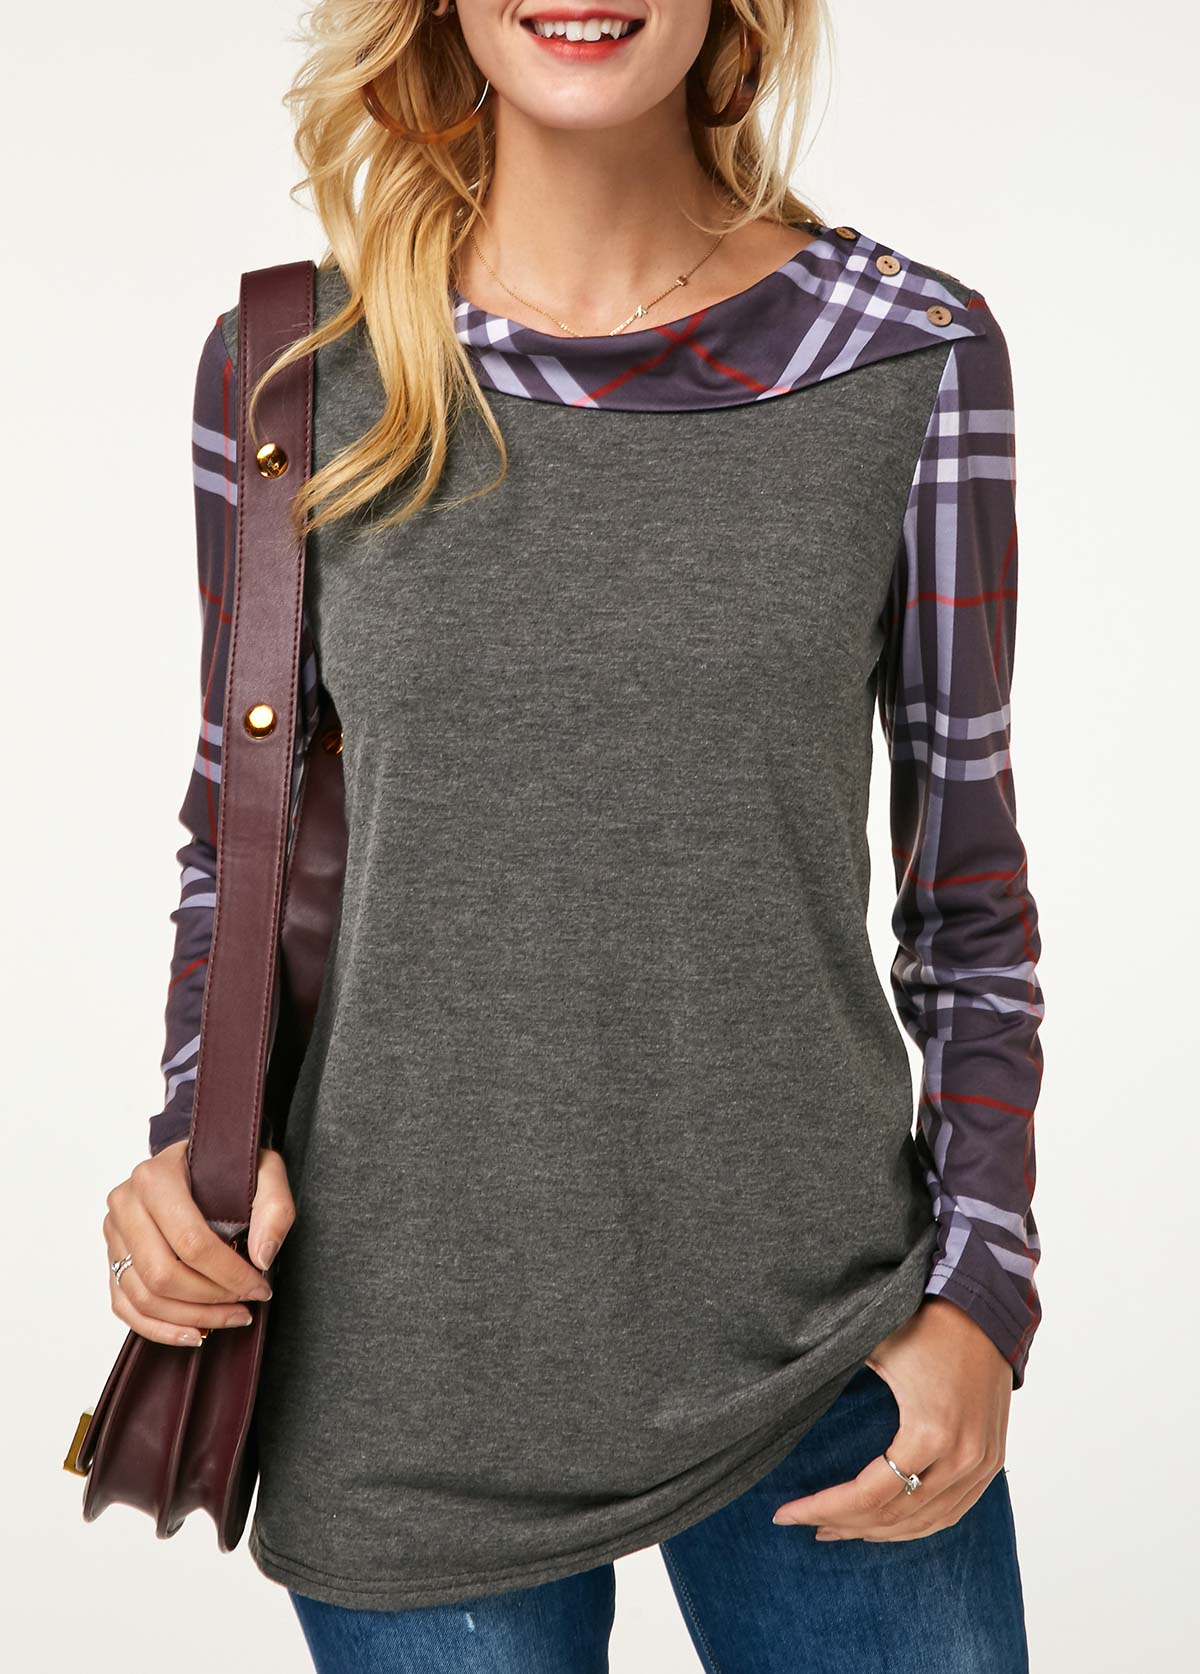 Plaid Print Button Detail Long Sleeve Grey Sweatshirt